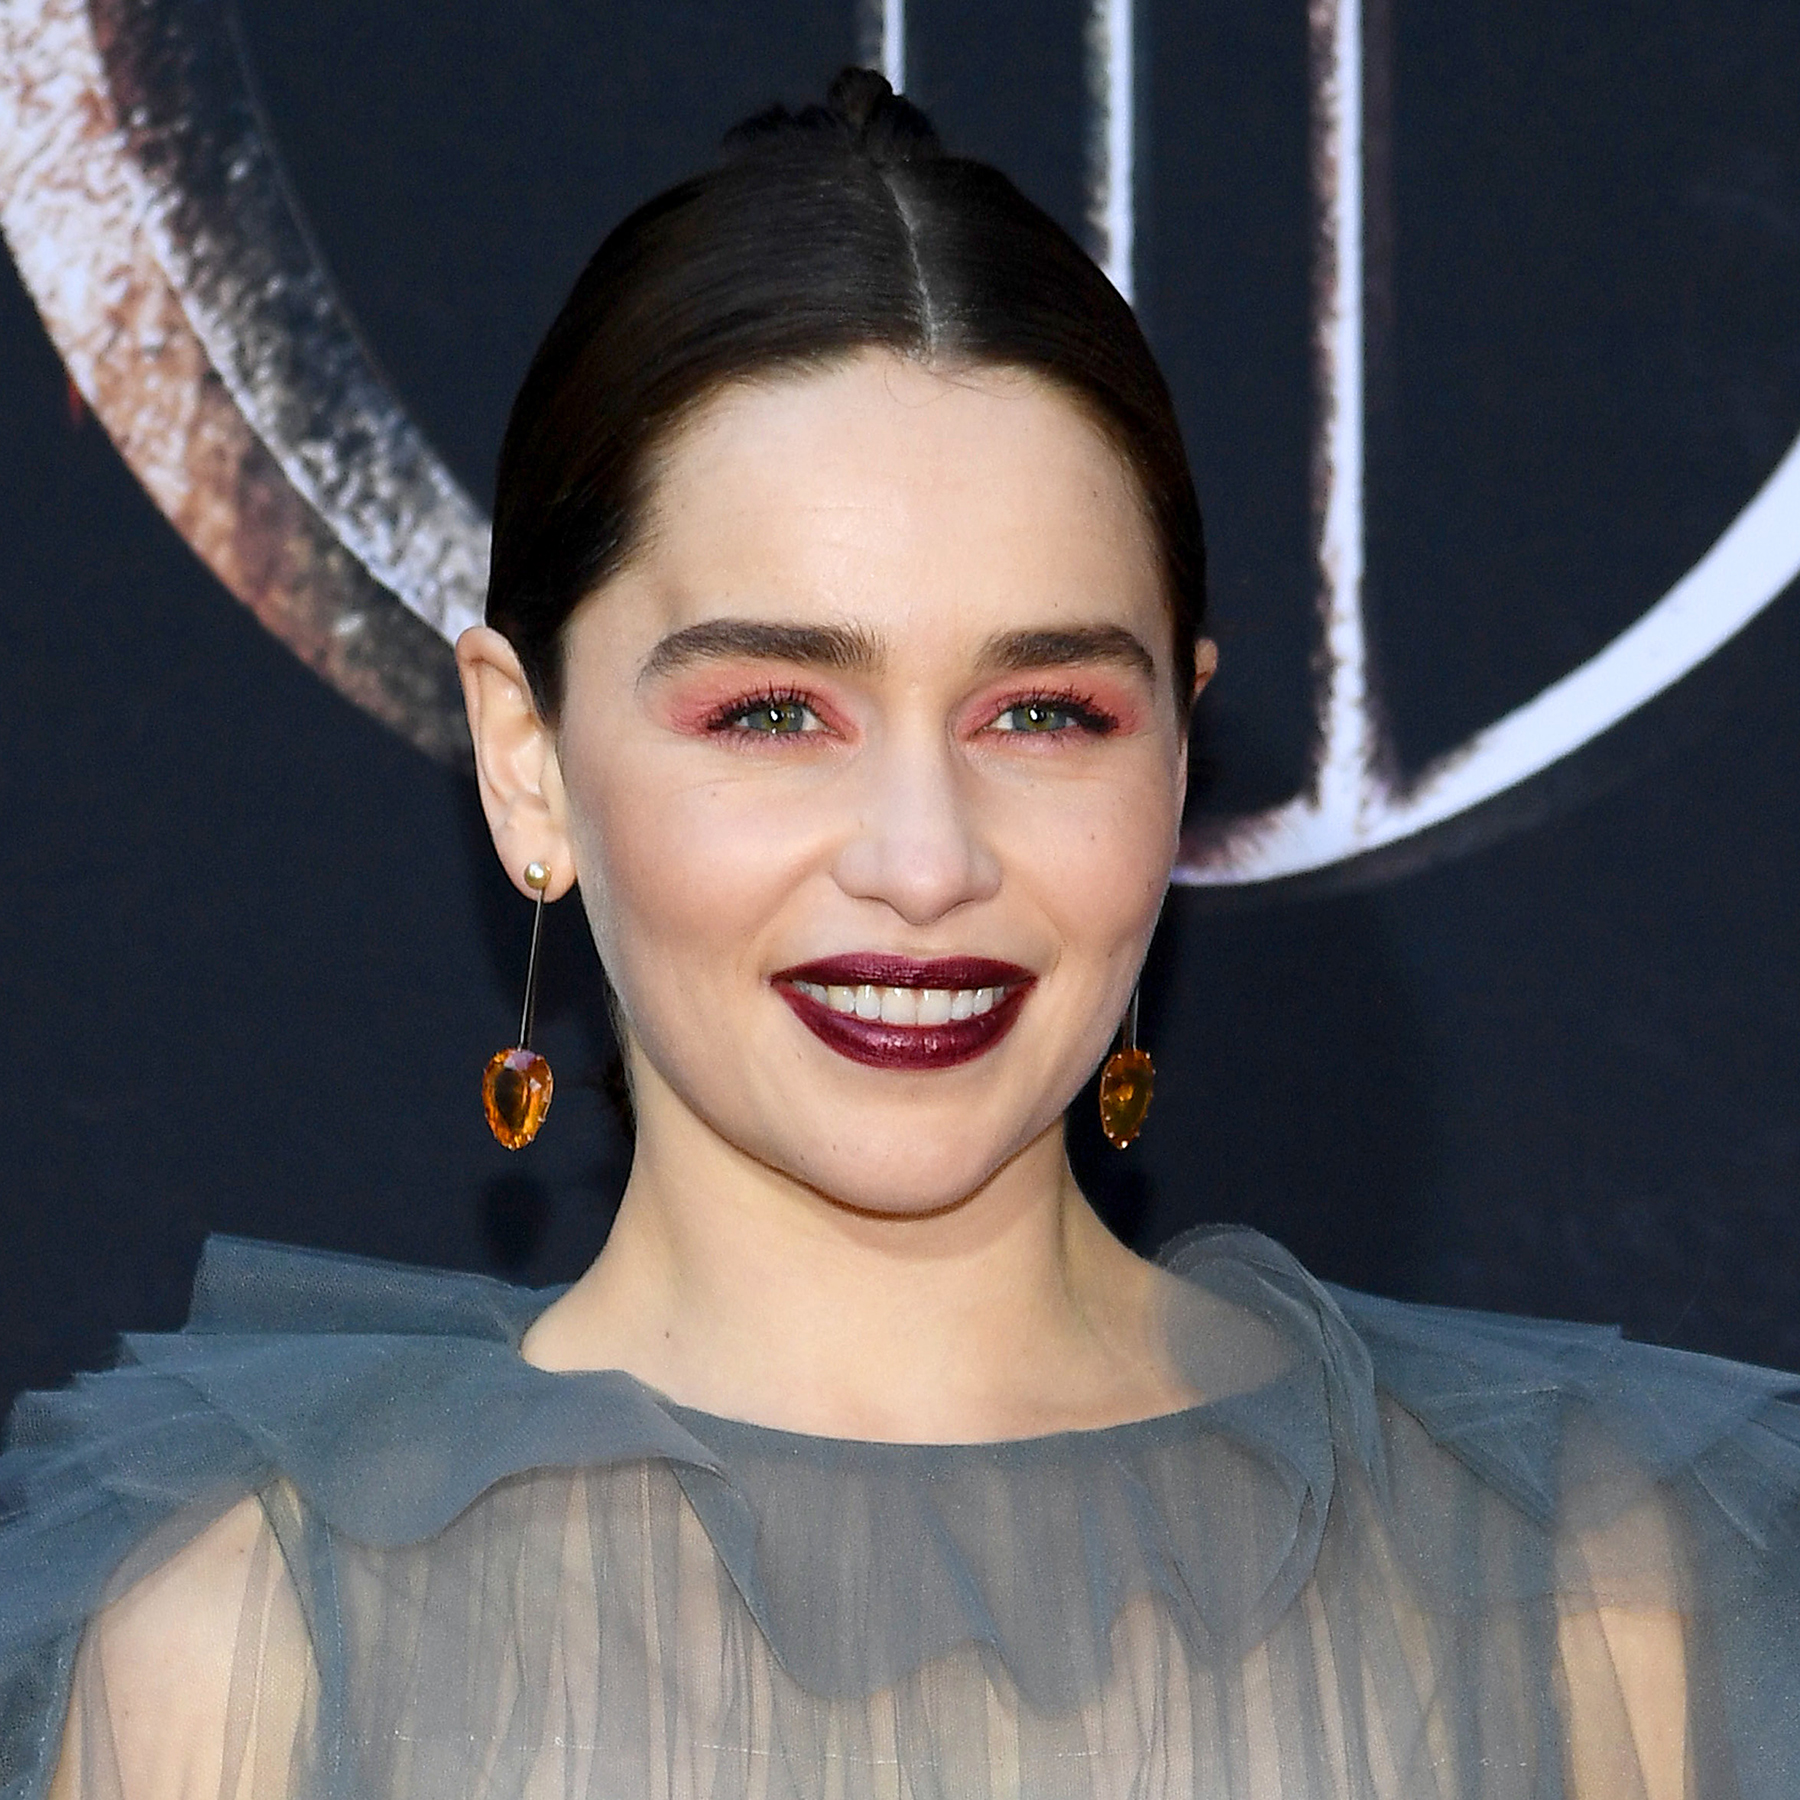 8 Epic Beauty Looks From The Game Of Thrones Final Season Premiere